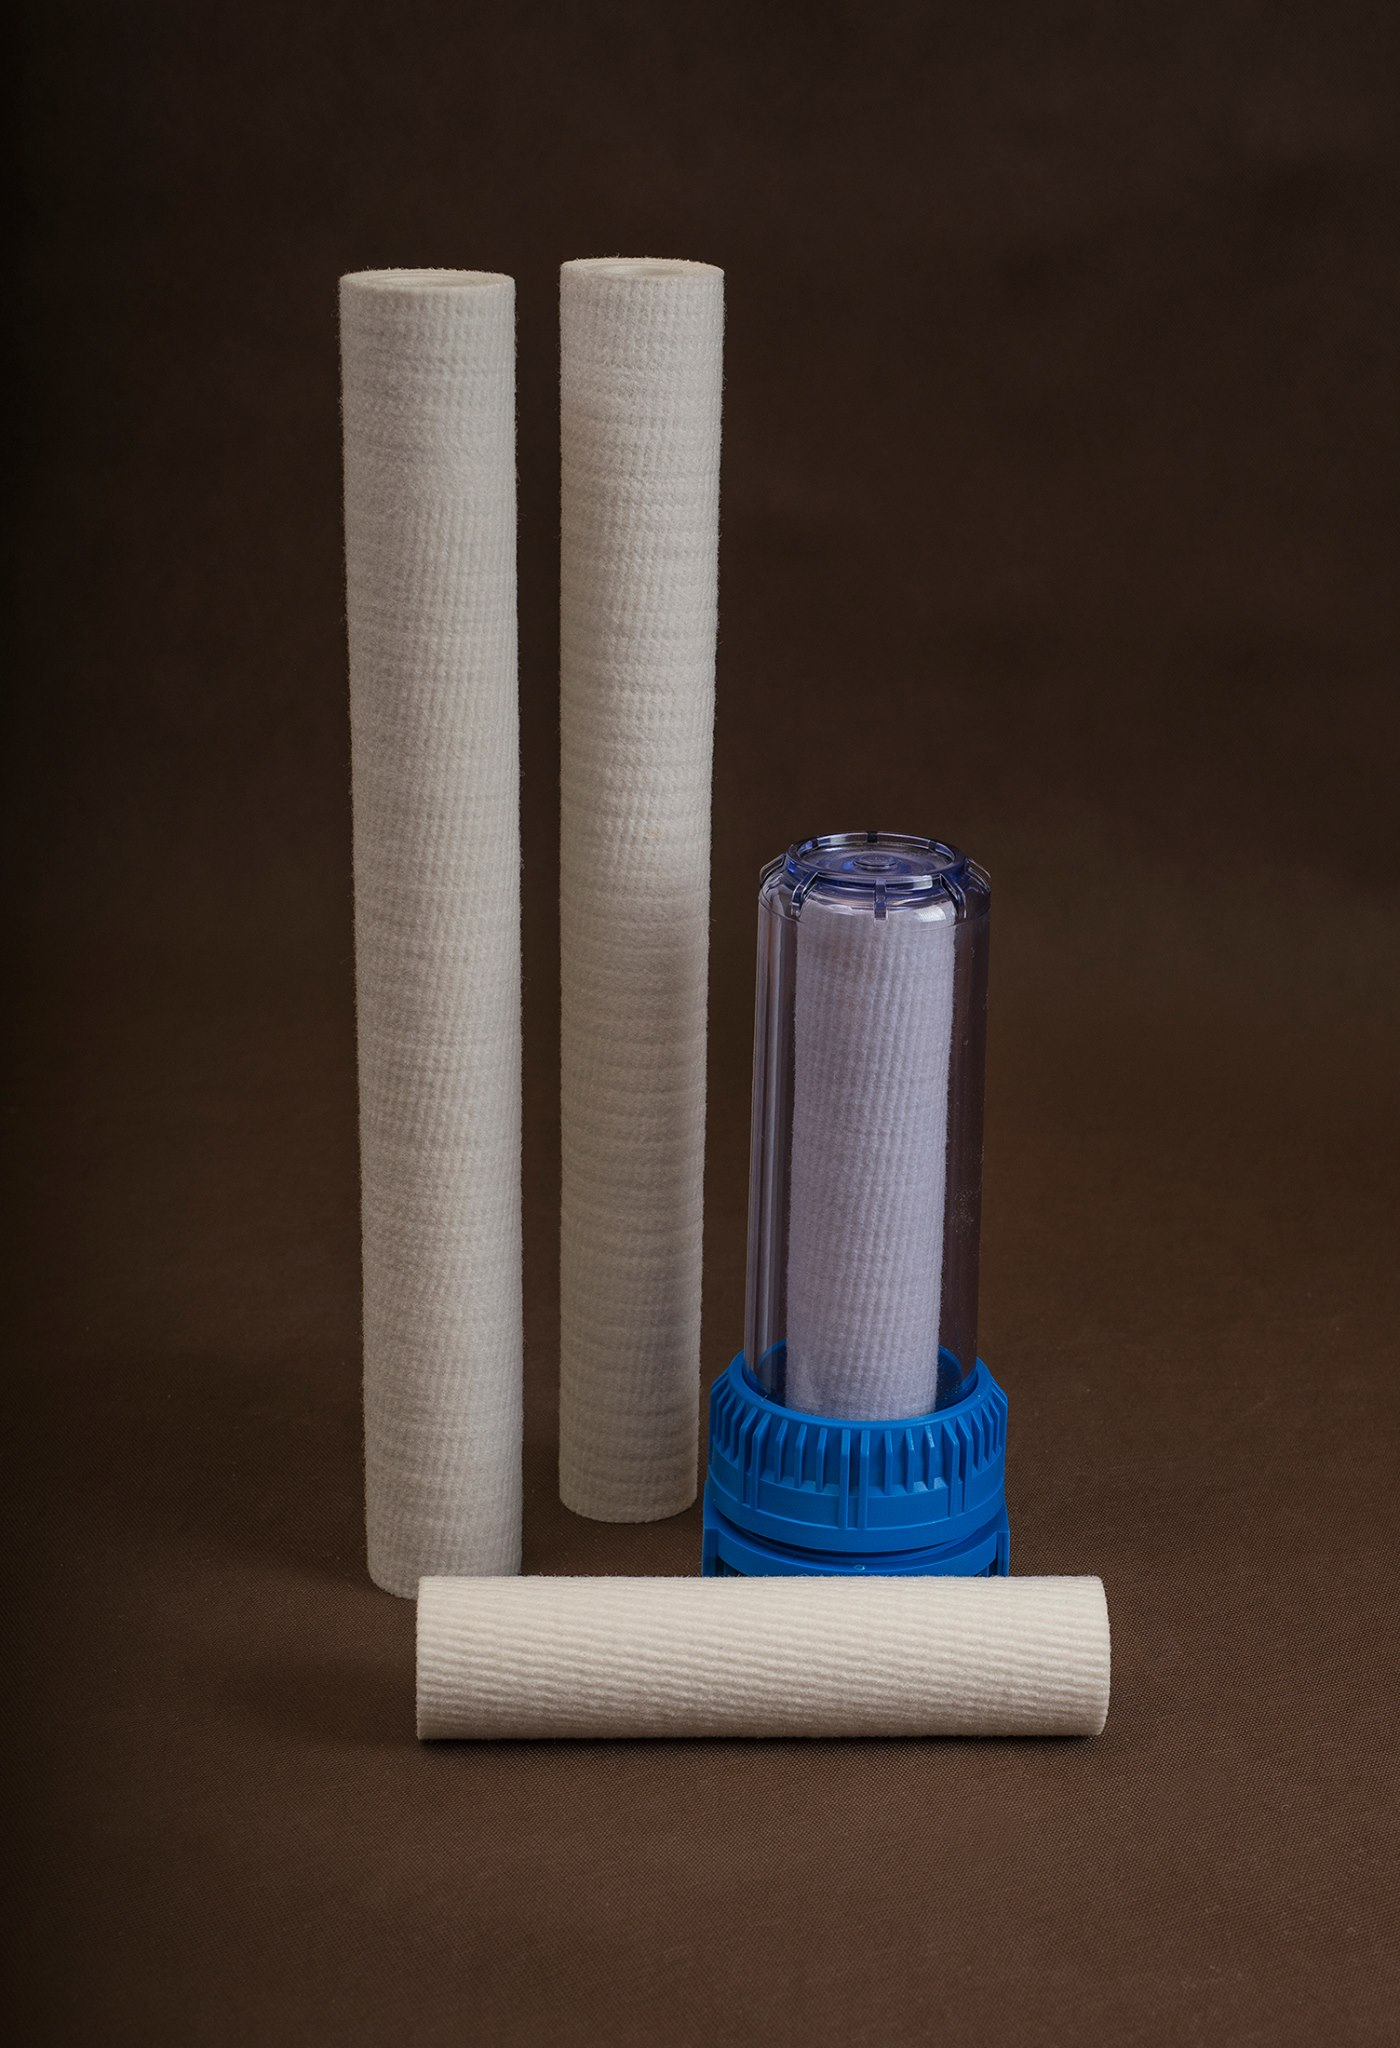 Candle filters to liquid filtration